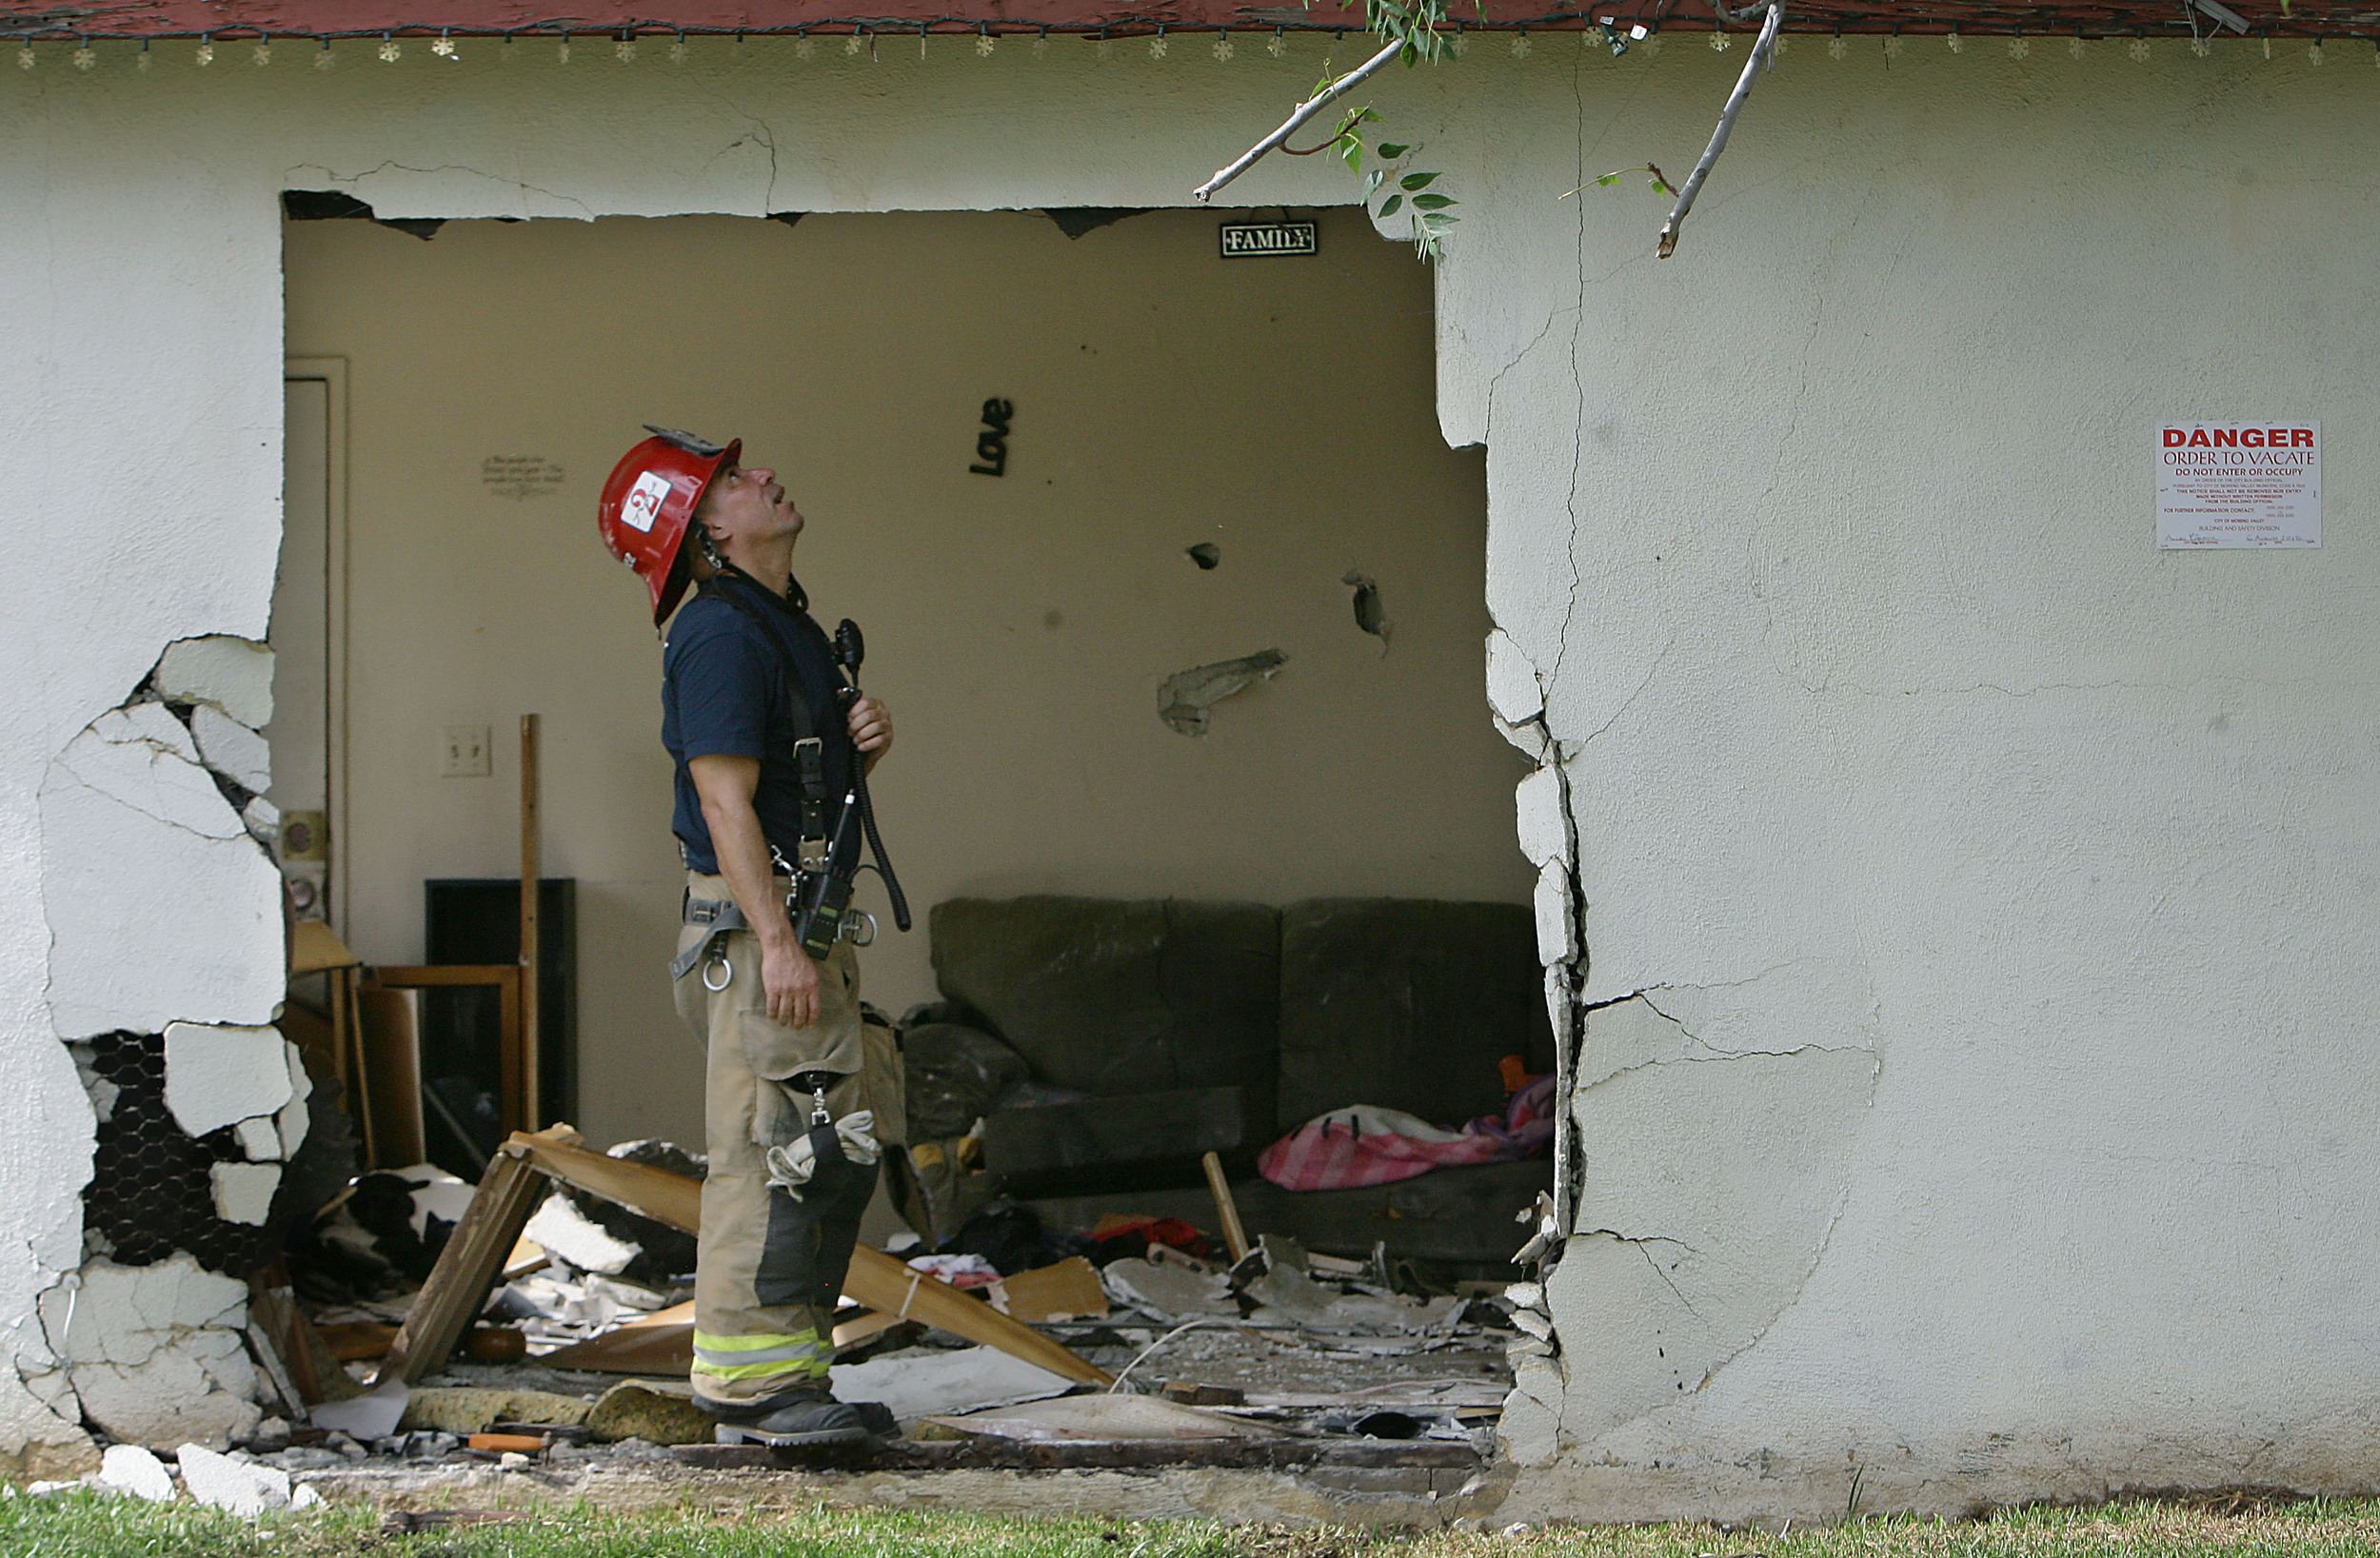 Moreno Valley Fire Station 2 fire Captain Michael Martinez looks over the damage after a pickup truck hit a parked pickup truck and plowed in to a home trapping woman between the couch and the truck Thursday in Moreno Valley, August 6, 2015.